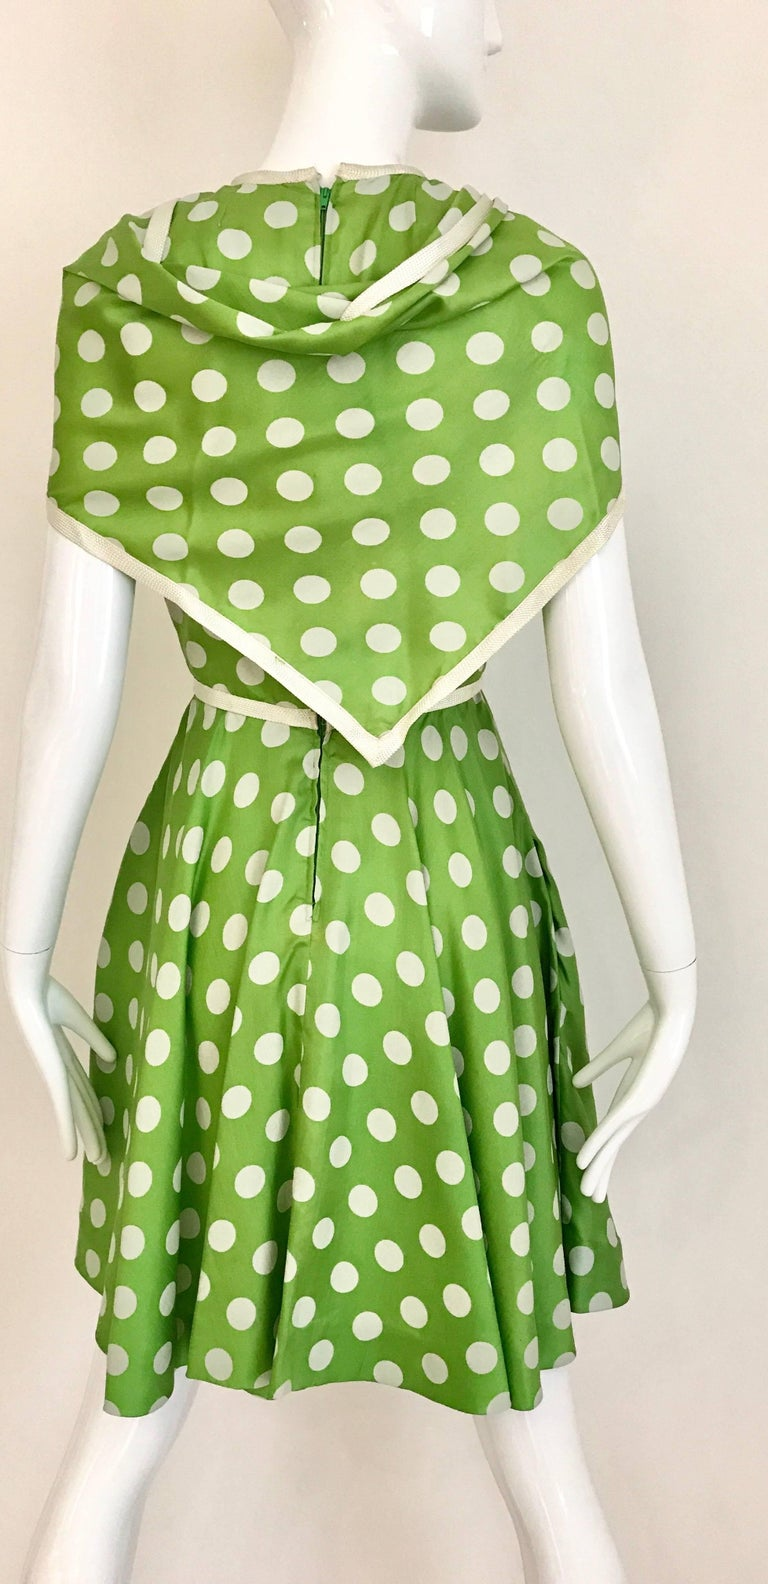 Women's 1960s TEAL TRAINA Lime Green and White Polka Dot Sleeveless Dress with Scarf For Sale